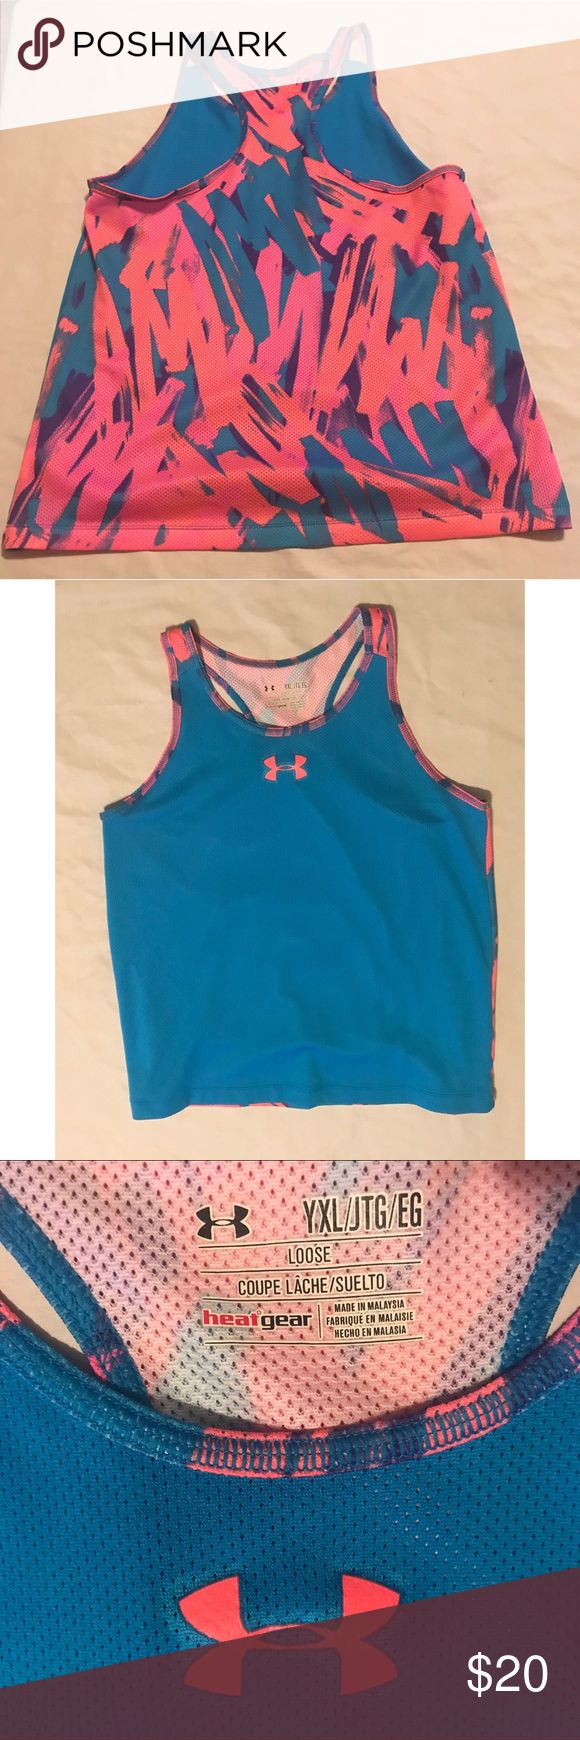 Under Armour Youth XL Tank Top Under Armour Youth XL Mesh Tank Top Blue & Pink graffiti style design on back    tags Under Armour Athletic Clothes Under Armour Shirts & Tops Tank Tops